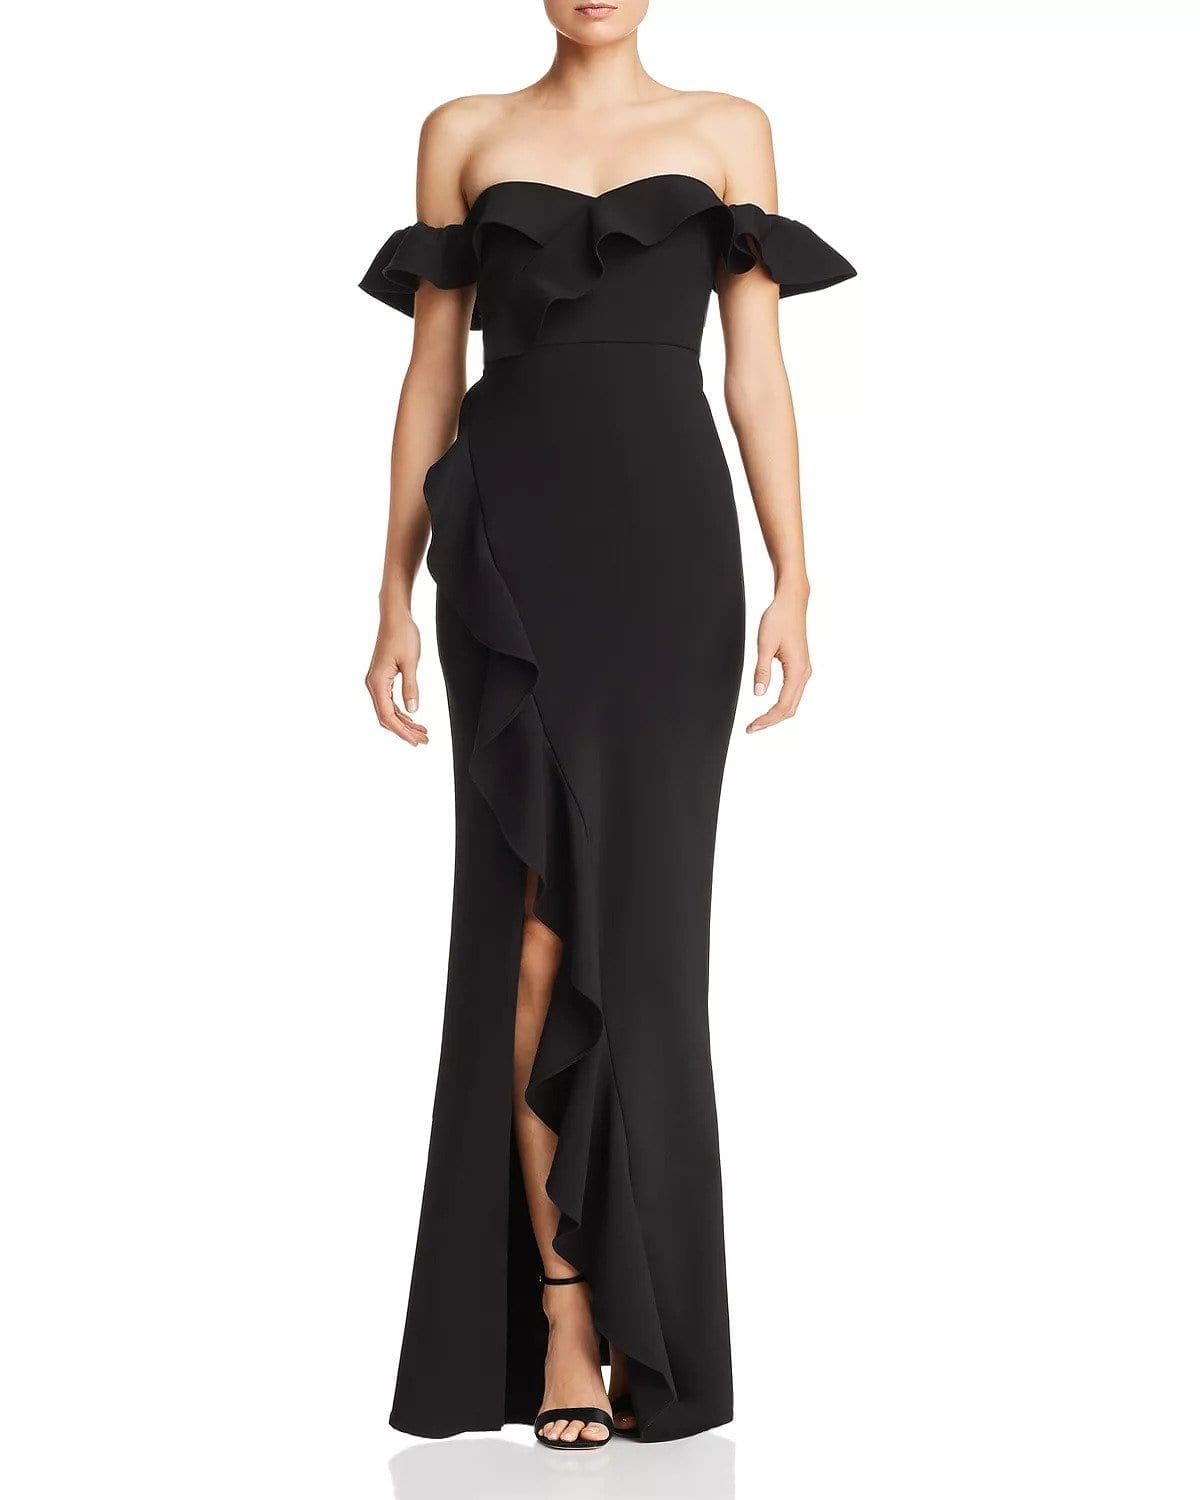 LIKELY Miller Off-the-Shoulder Black Gown